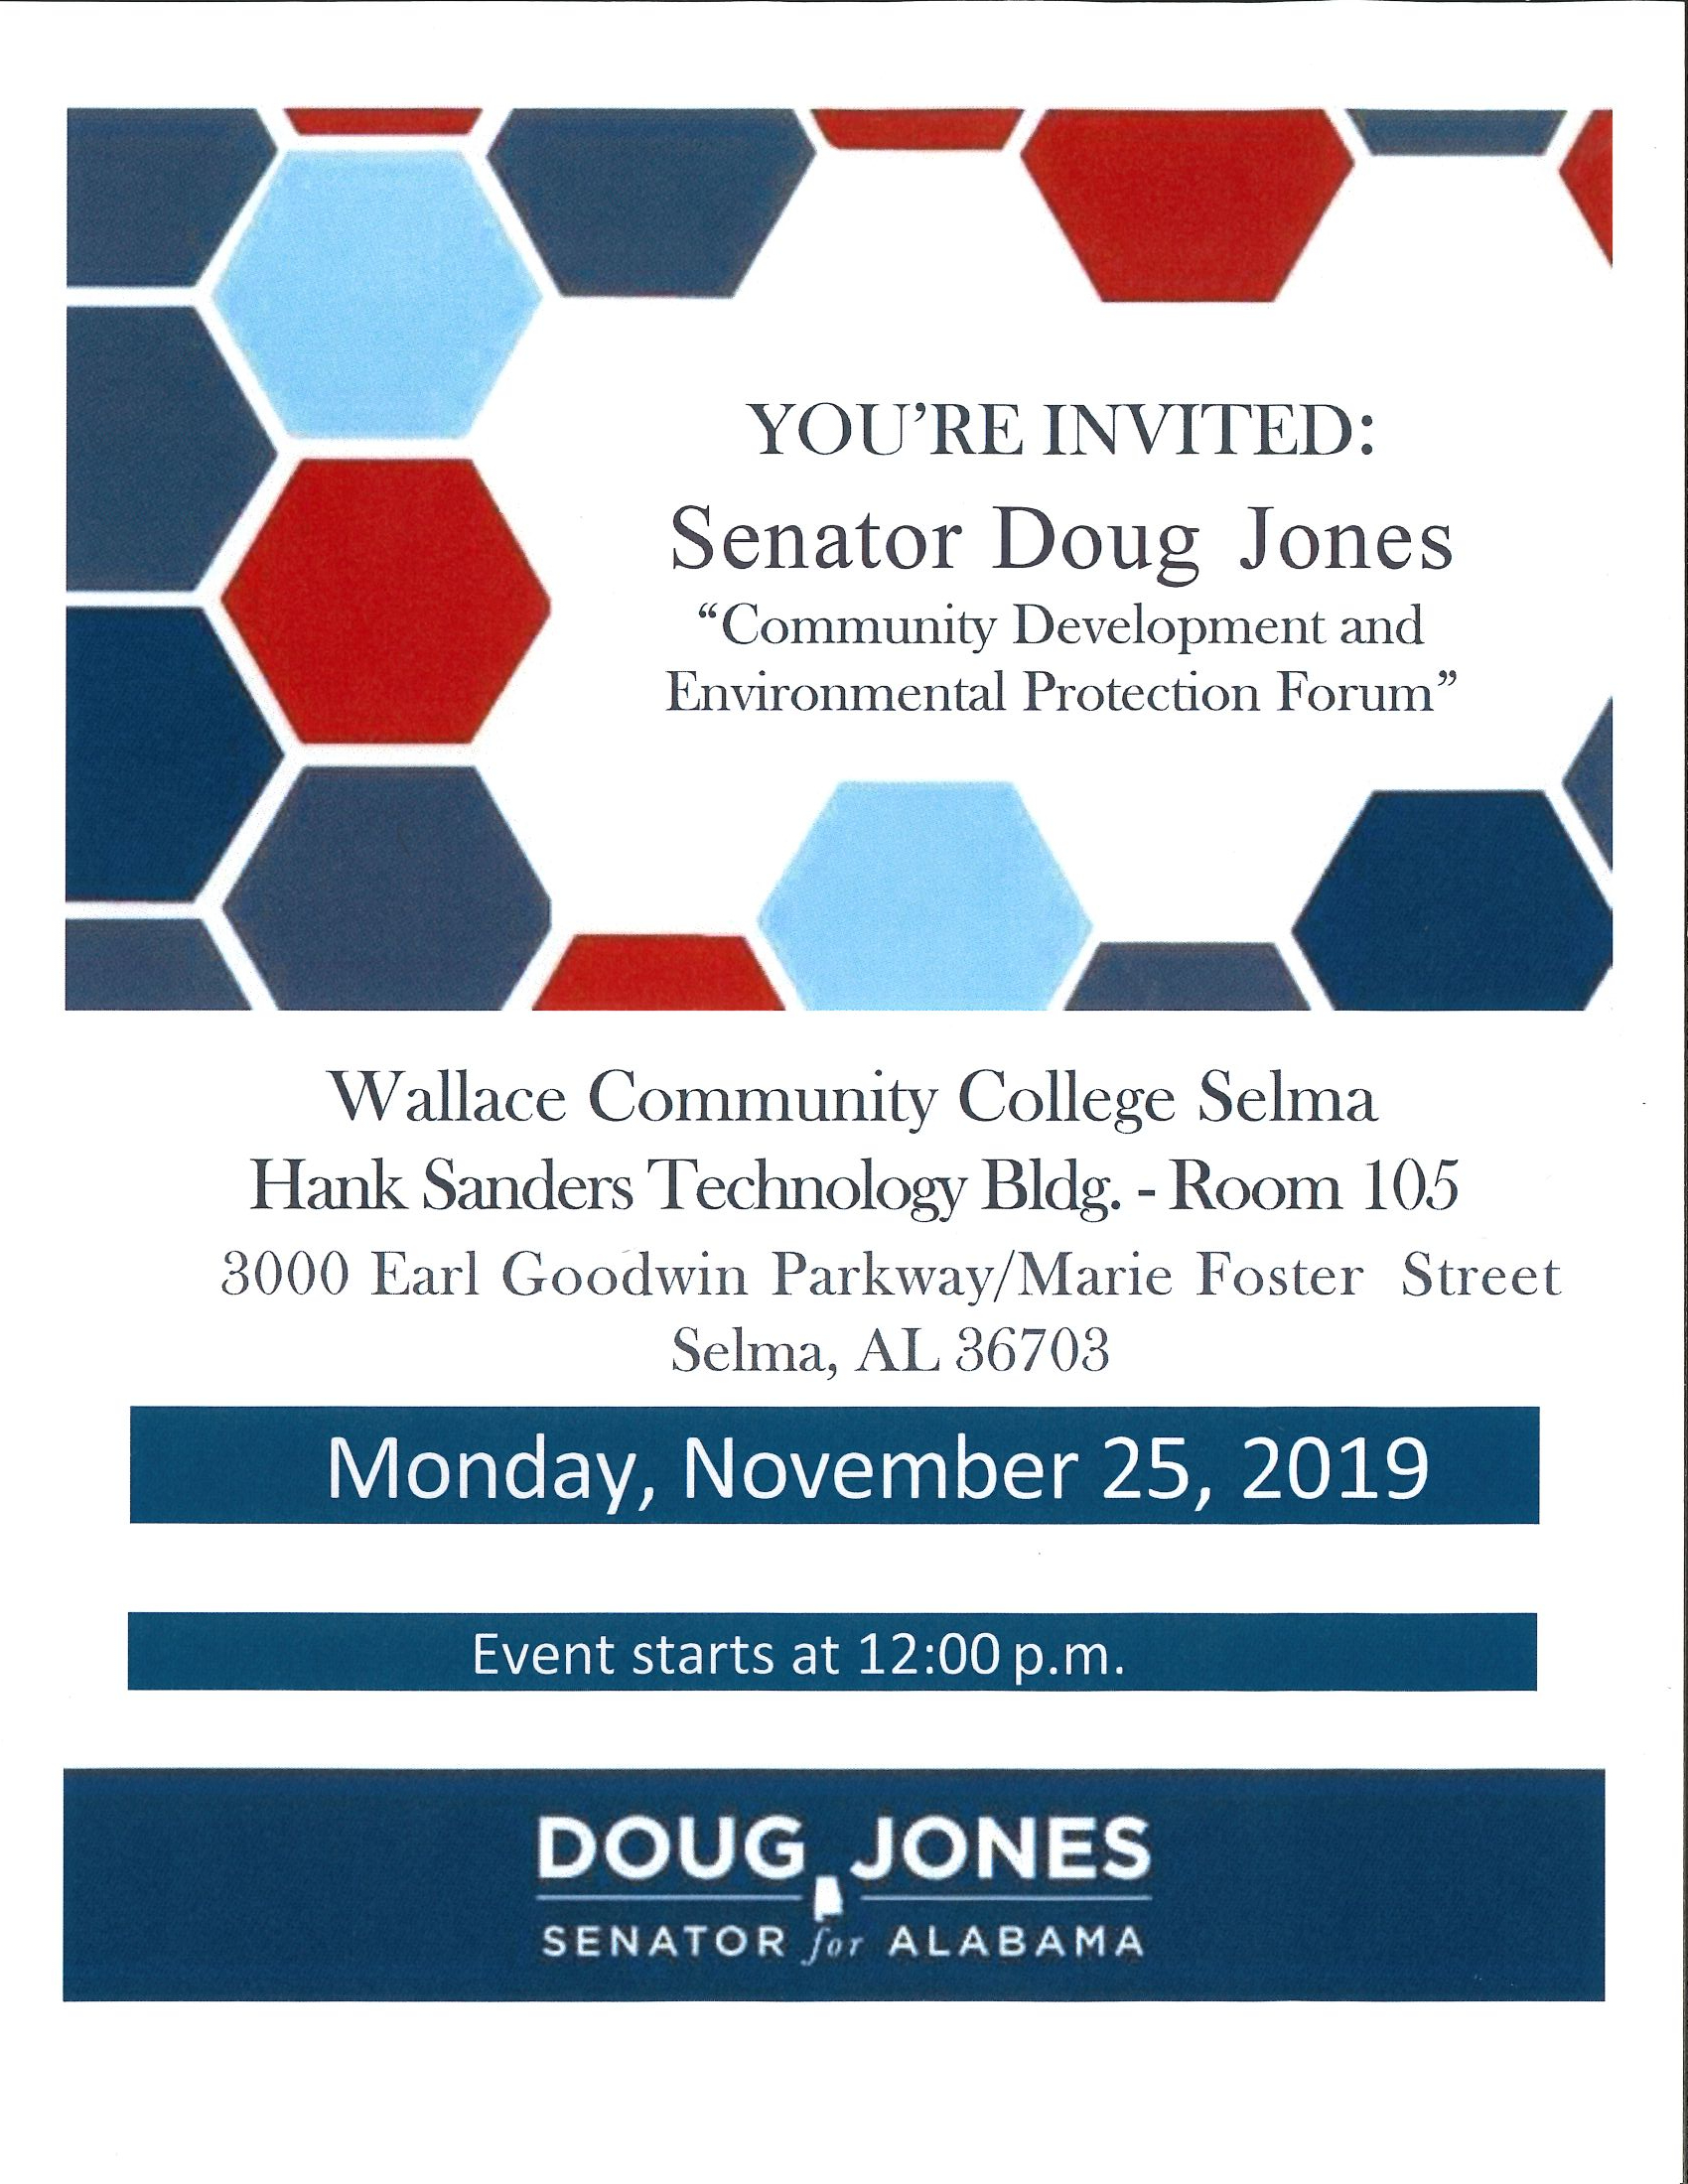 Senator Doug Jones Meeting November